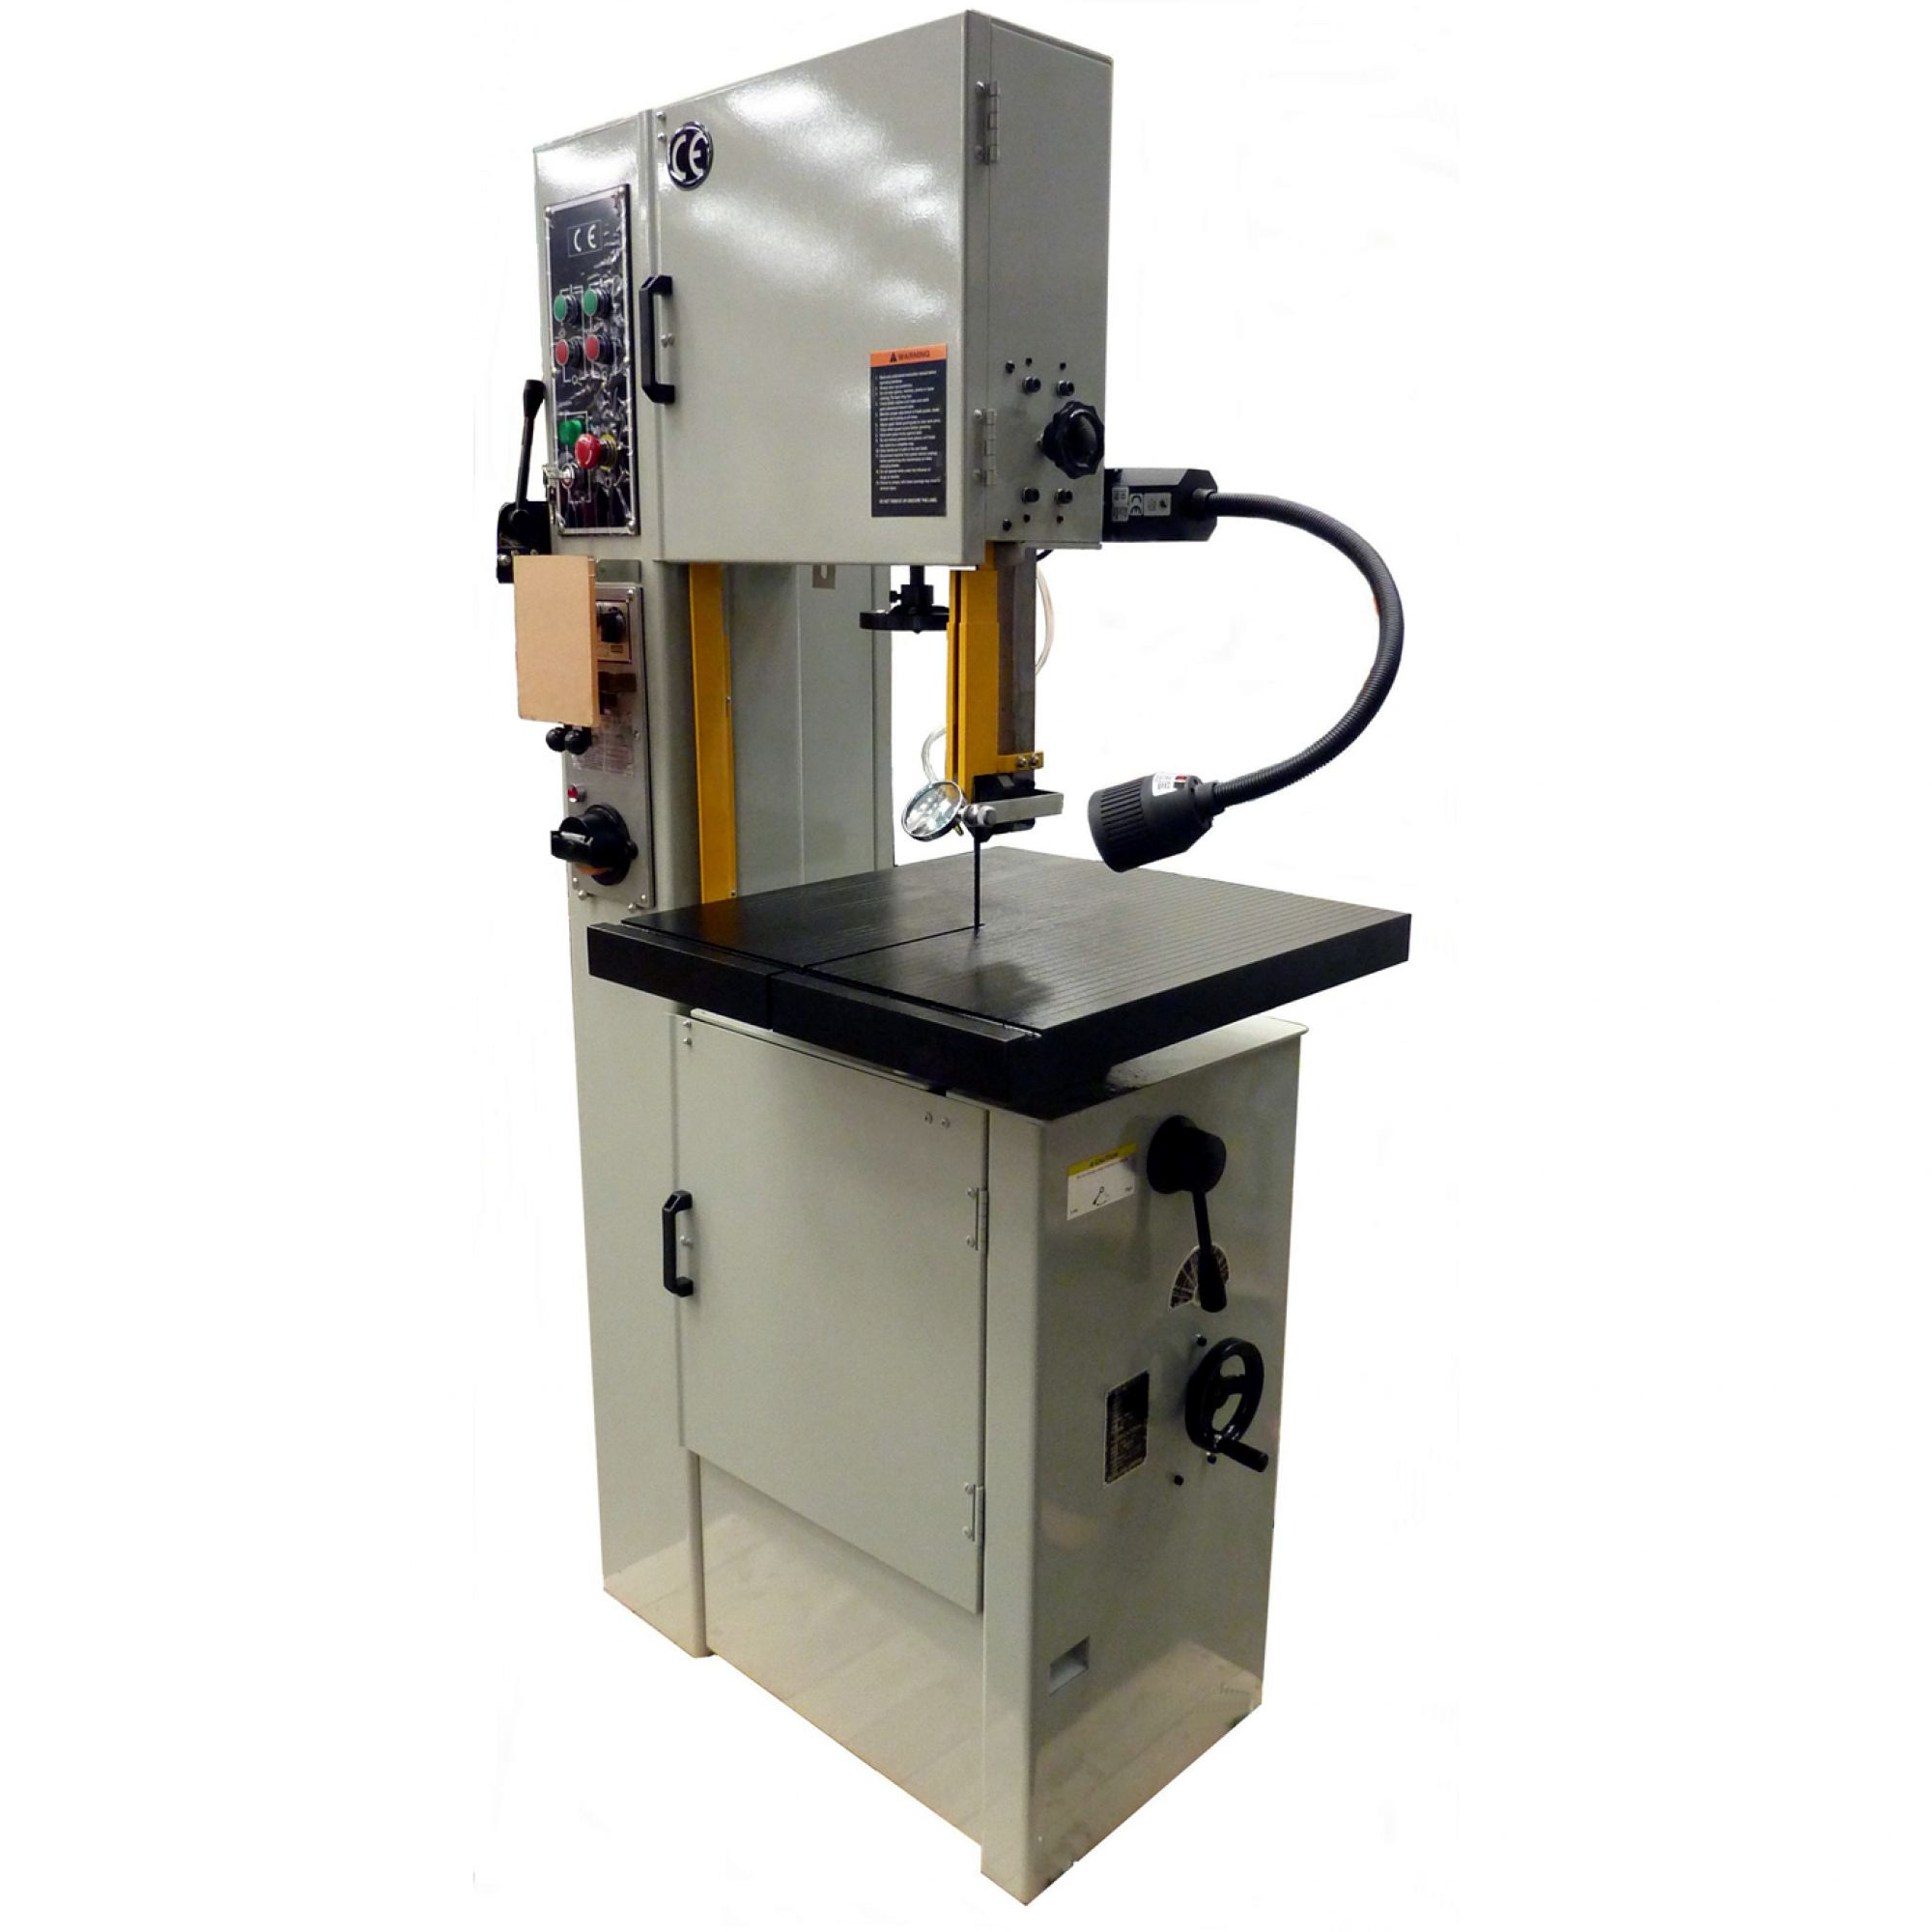 SD 1610 Vertical Bandsaw